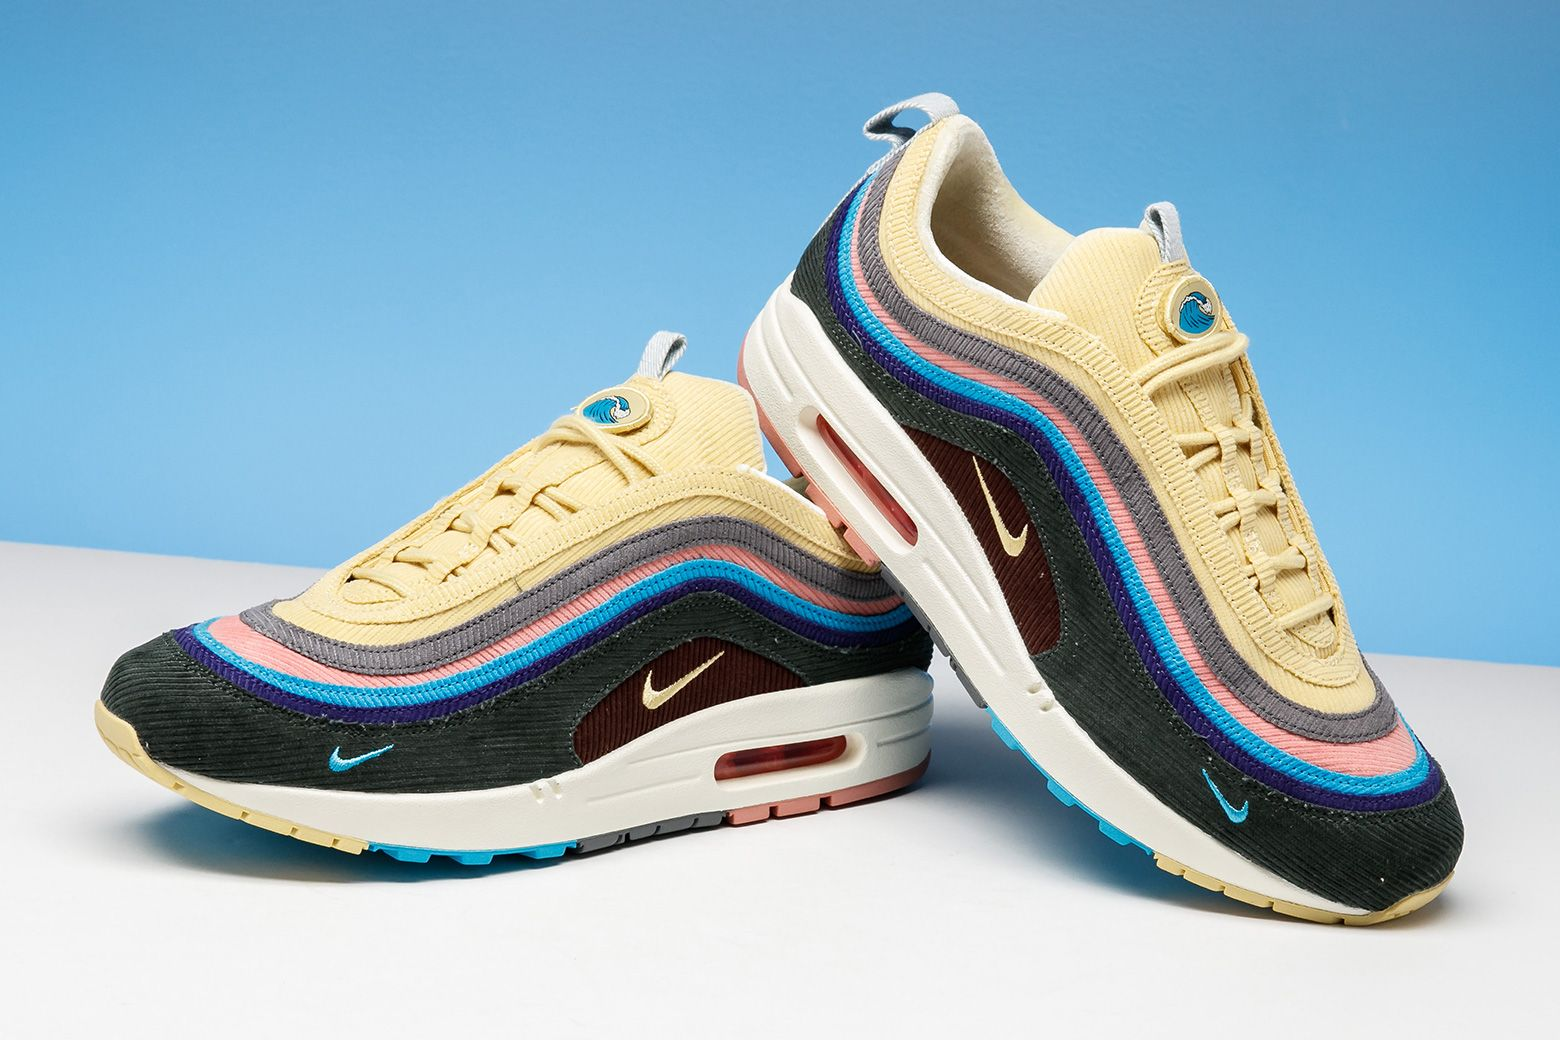 Sneaker Trivia: Who collaborated with Nike on this Air Max 1/97 hybrid?